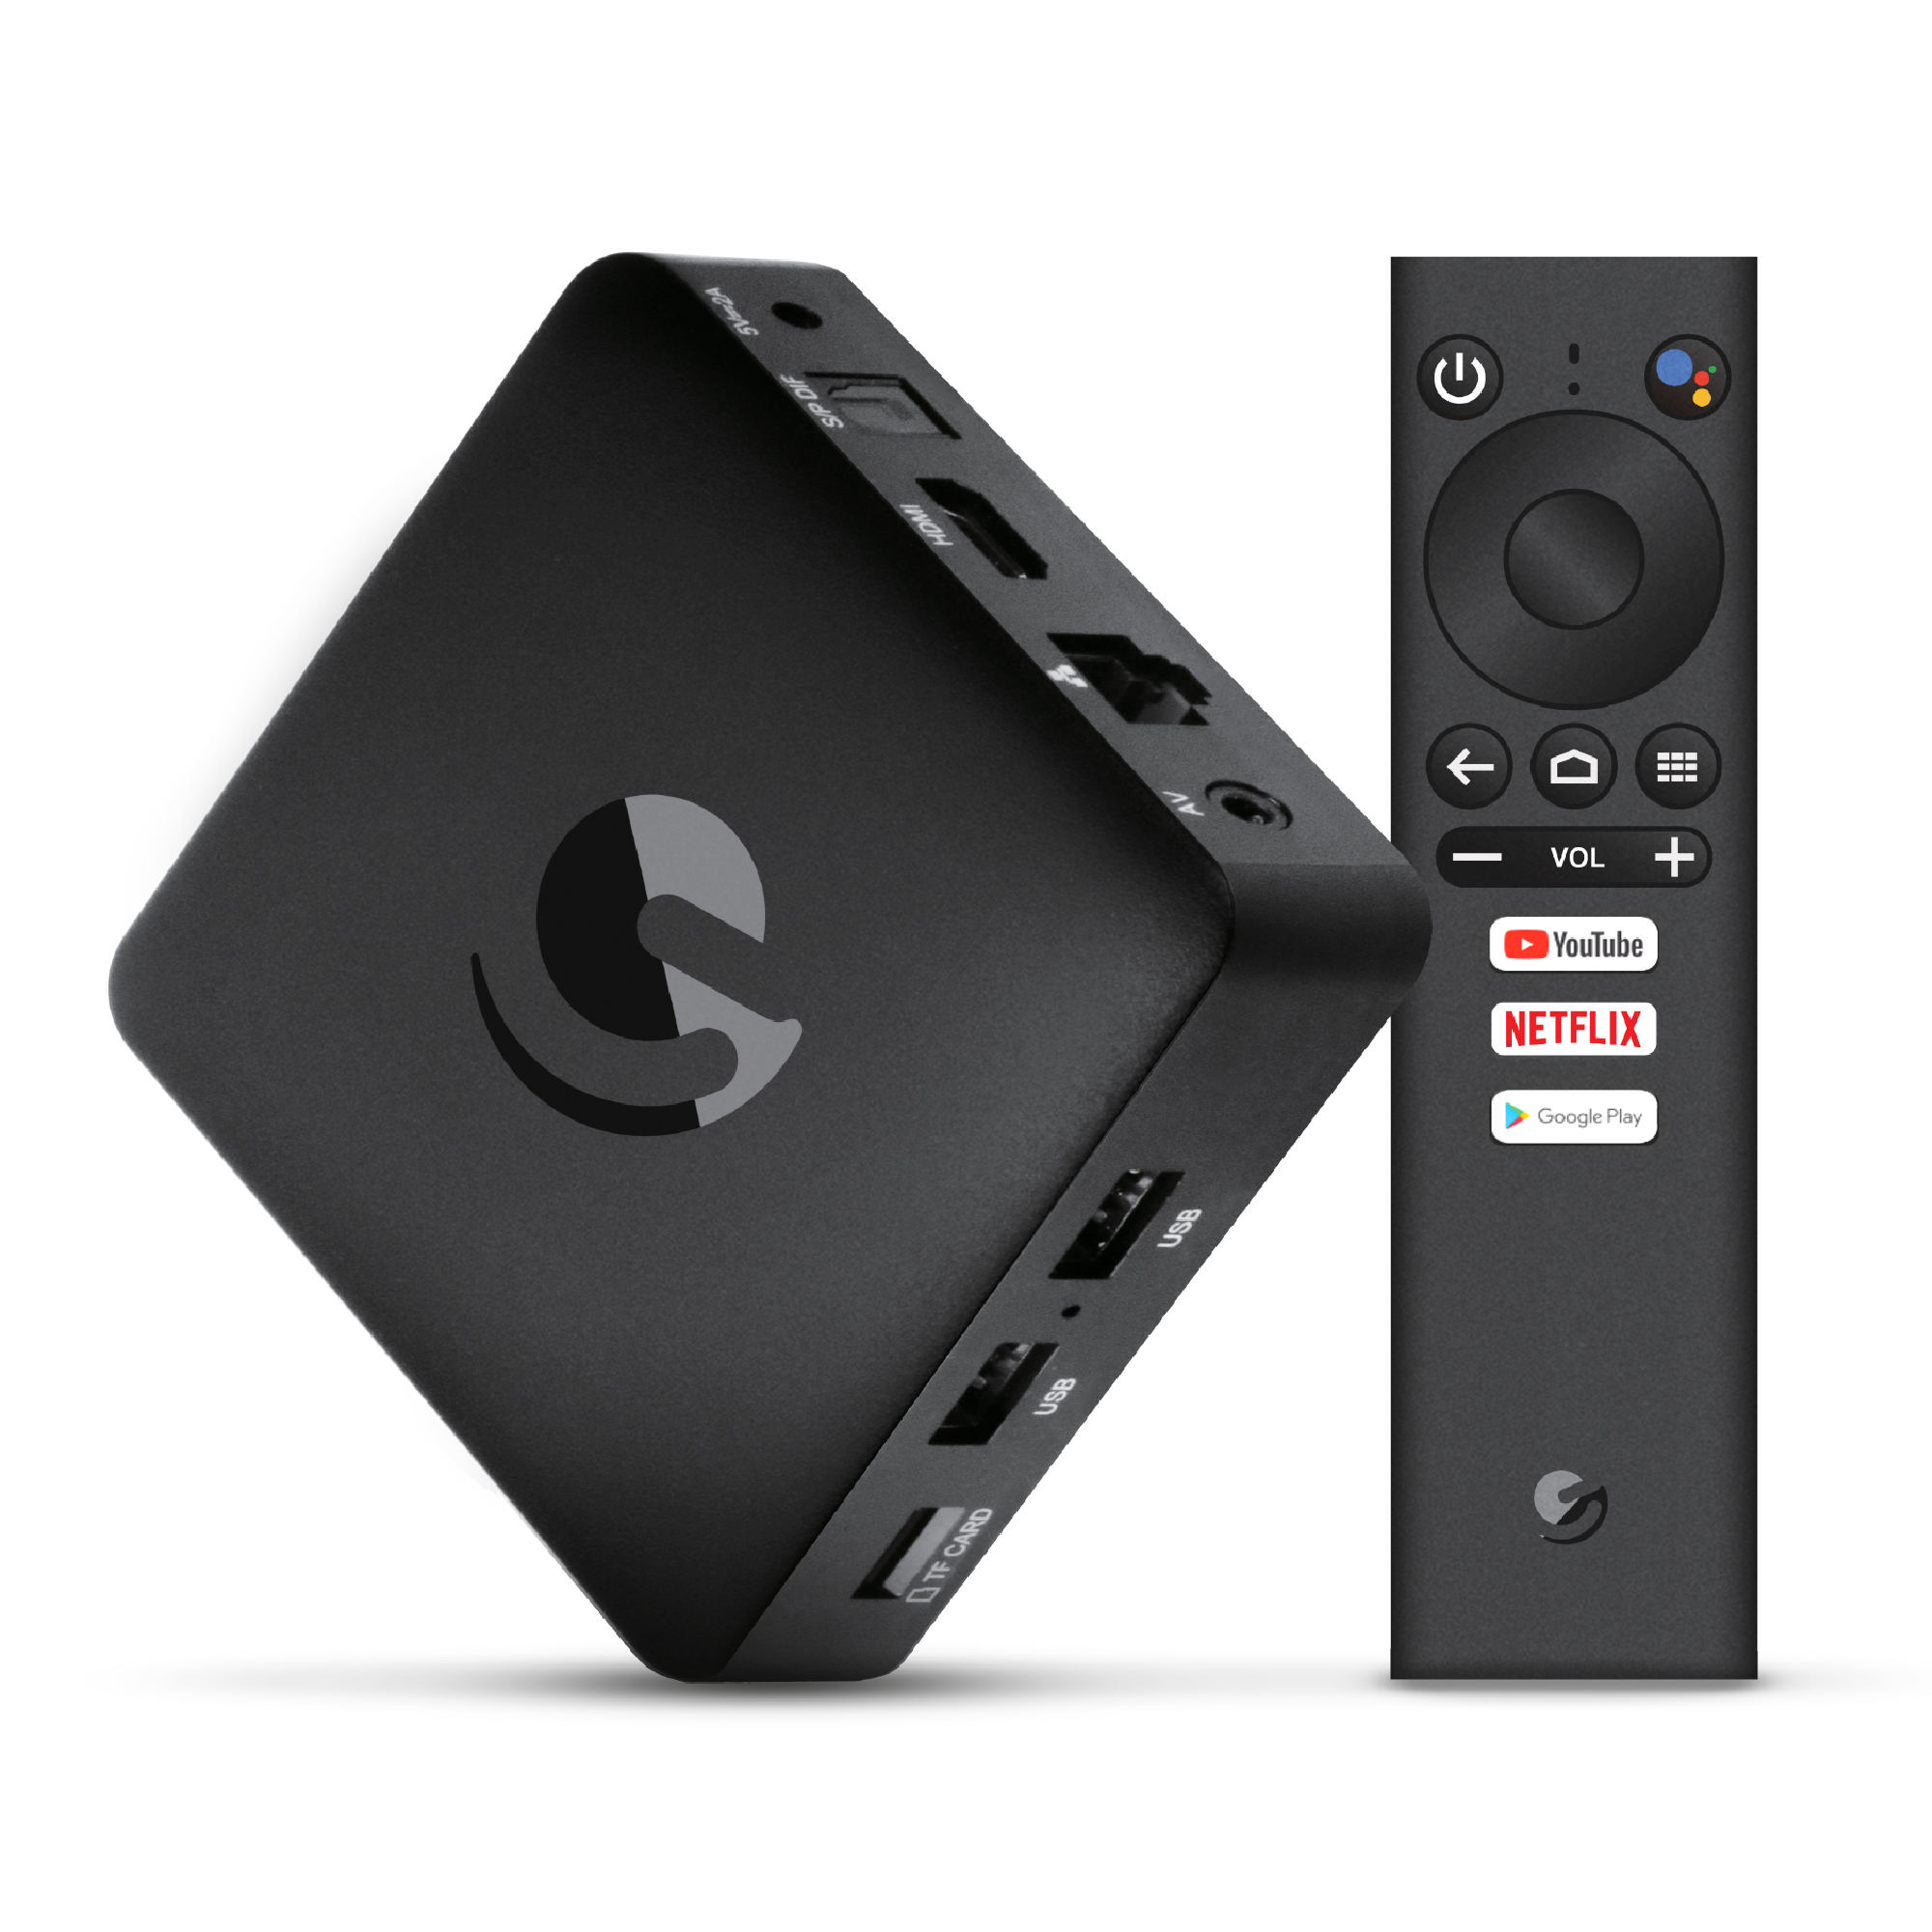 Jetstream 4k Ultra Hd Android Tv Box Review